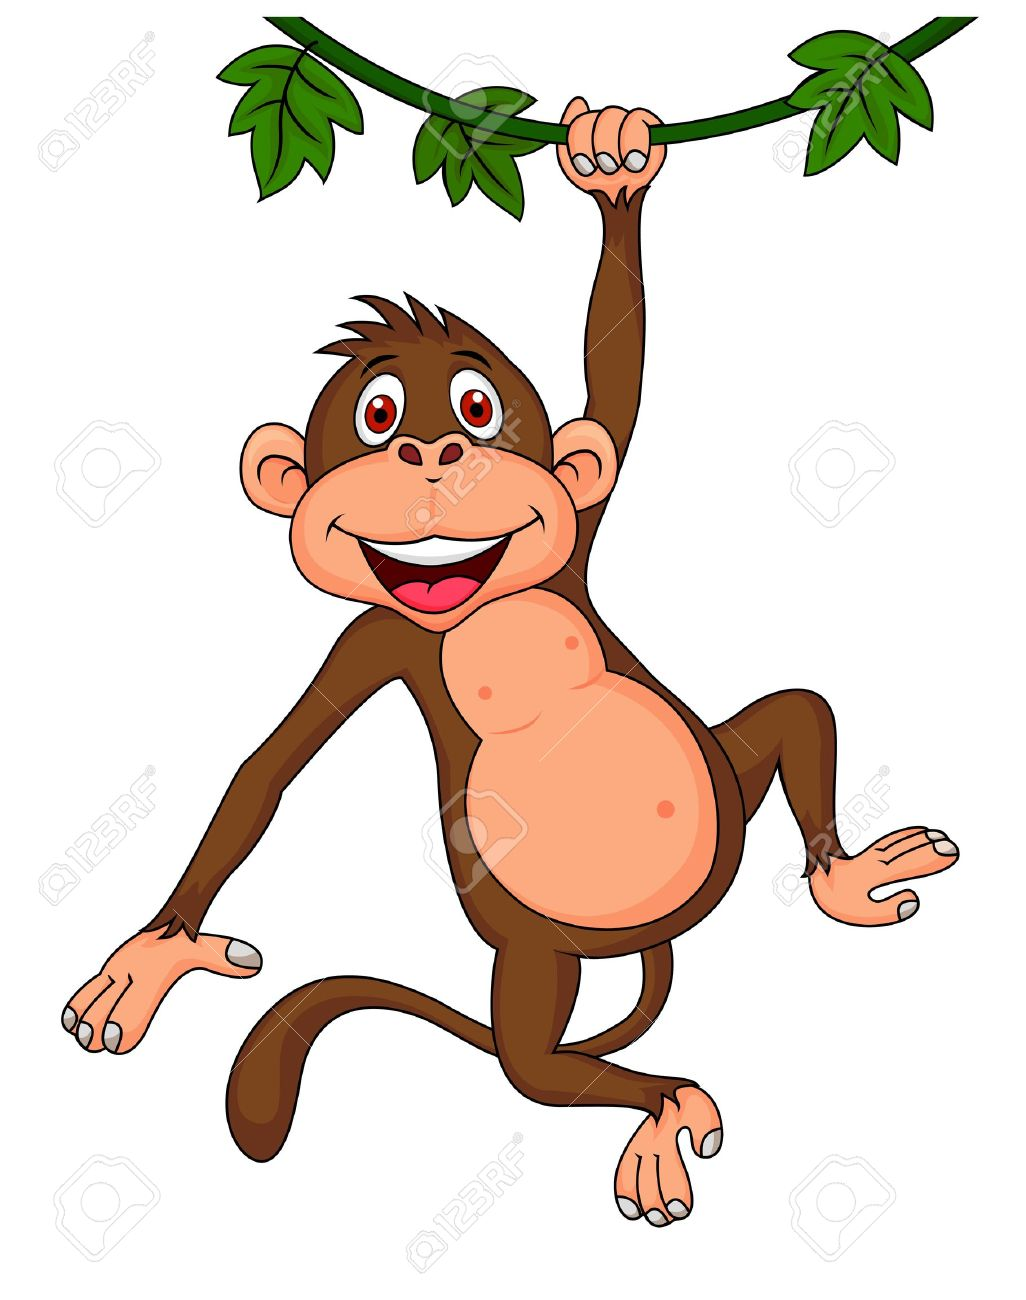 Images for simple cartoon monkey hanging - Cute Monkey Hanging Stock Vector 18586337